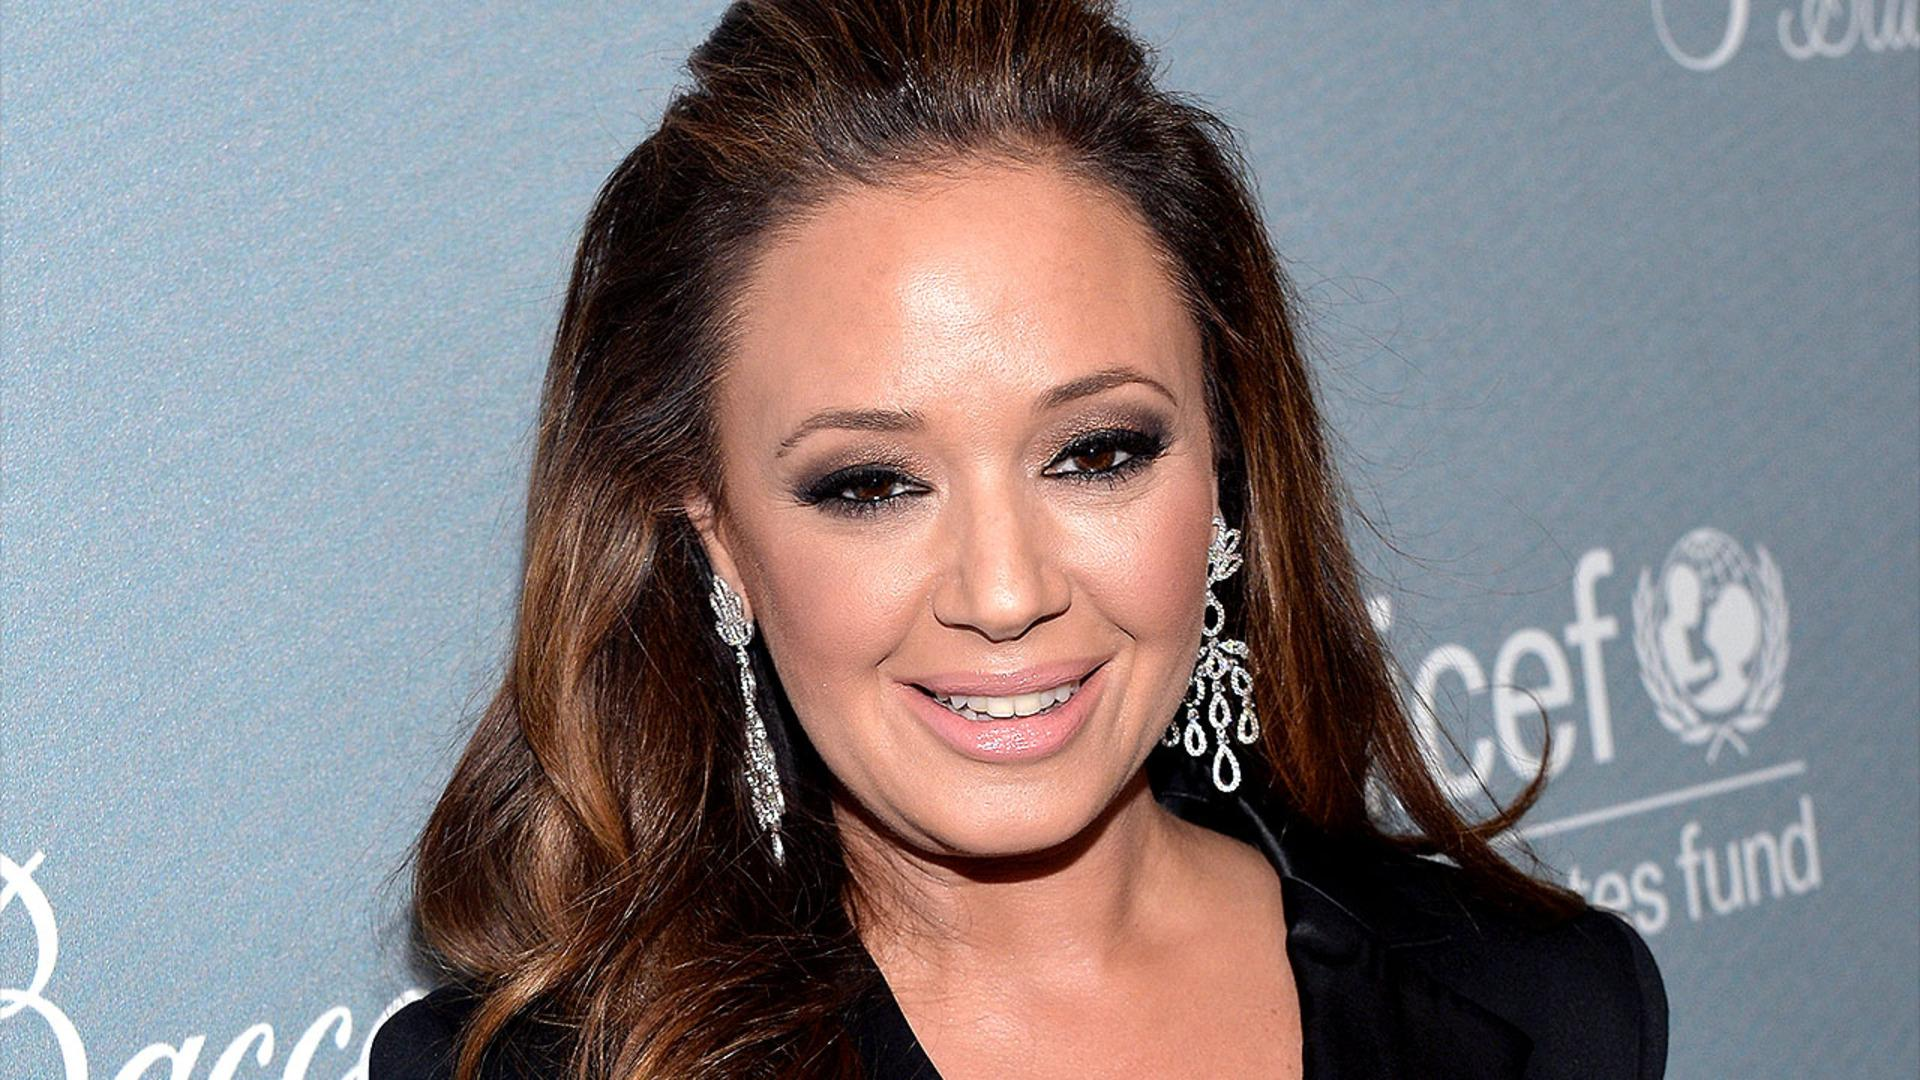 Leah Remini Driving Force Behind New Scientology Tell-All Book Written by Leader's Father